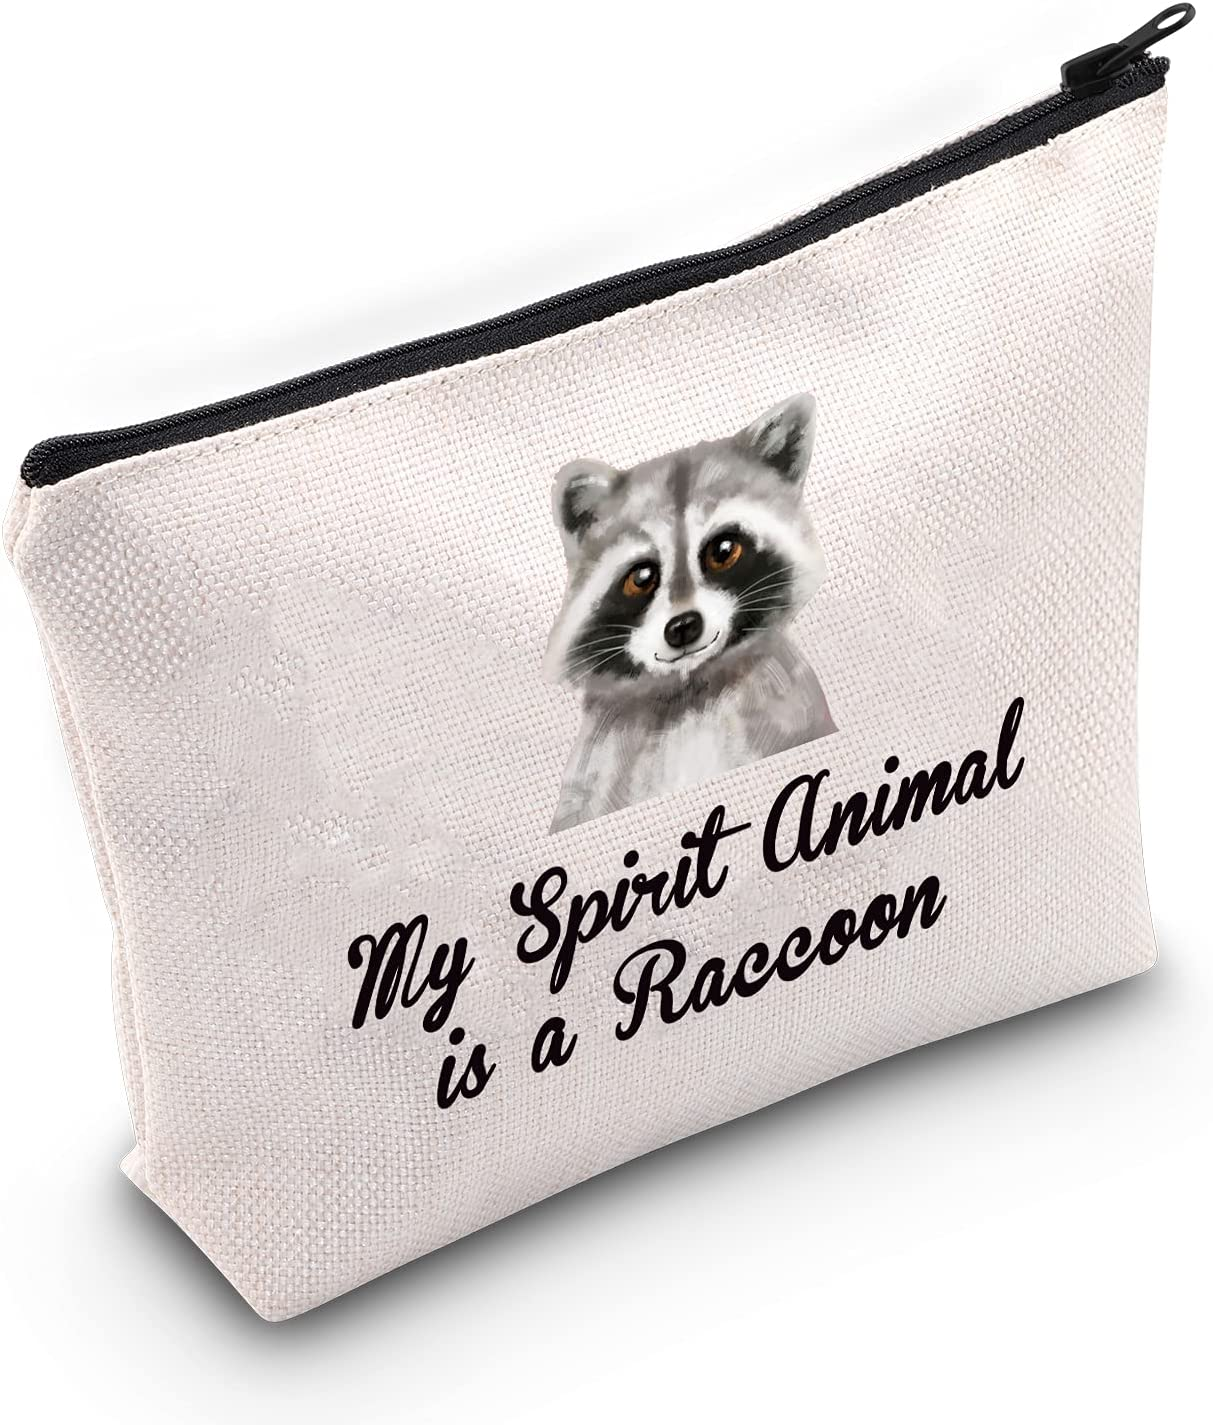 JINUP Raccoon 40% OFF Cheap Sale Gift Animal Mail order cheap My Cosmetic Bag Spirit